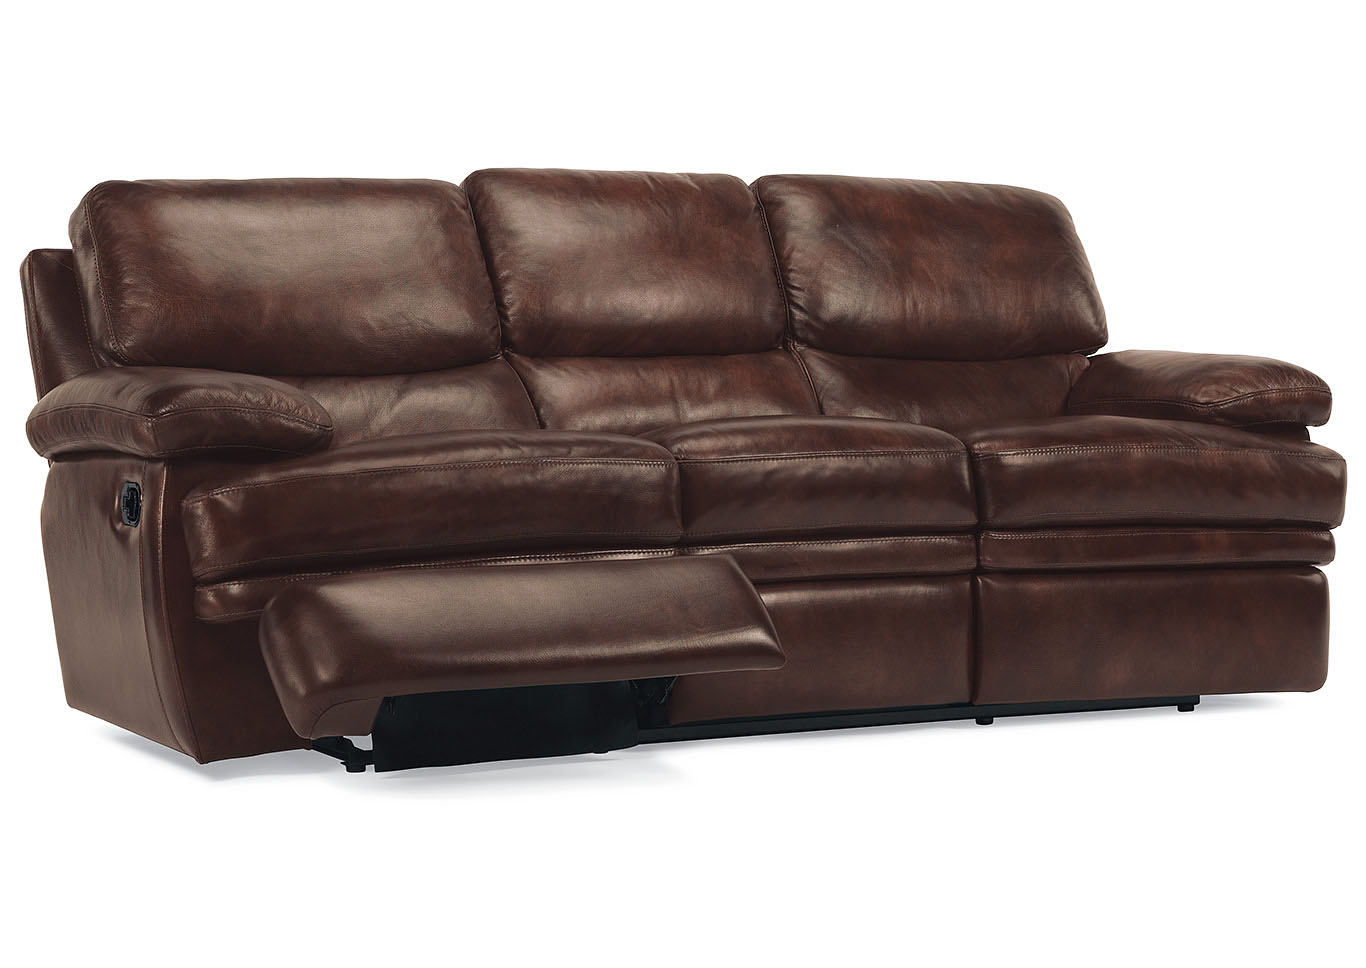 Dylan Leather Reclining Sofa,Flexsteel